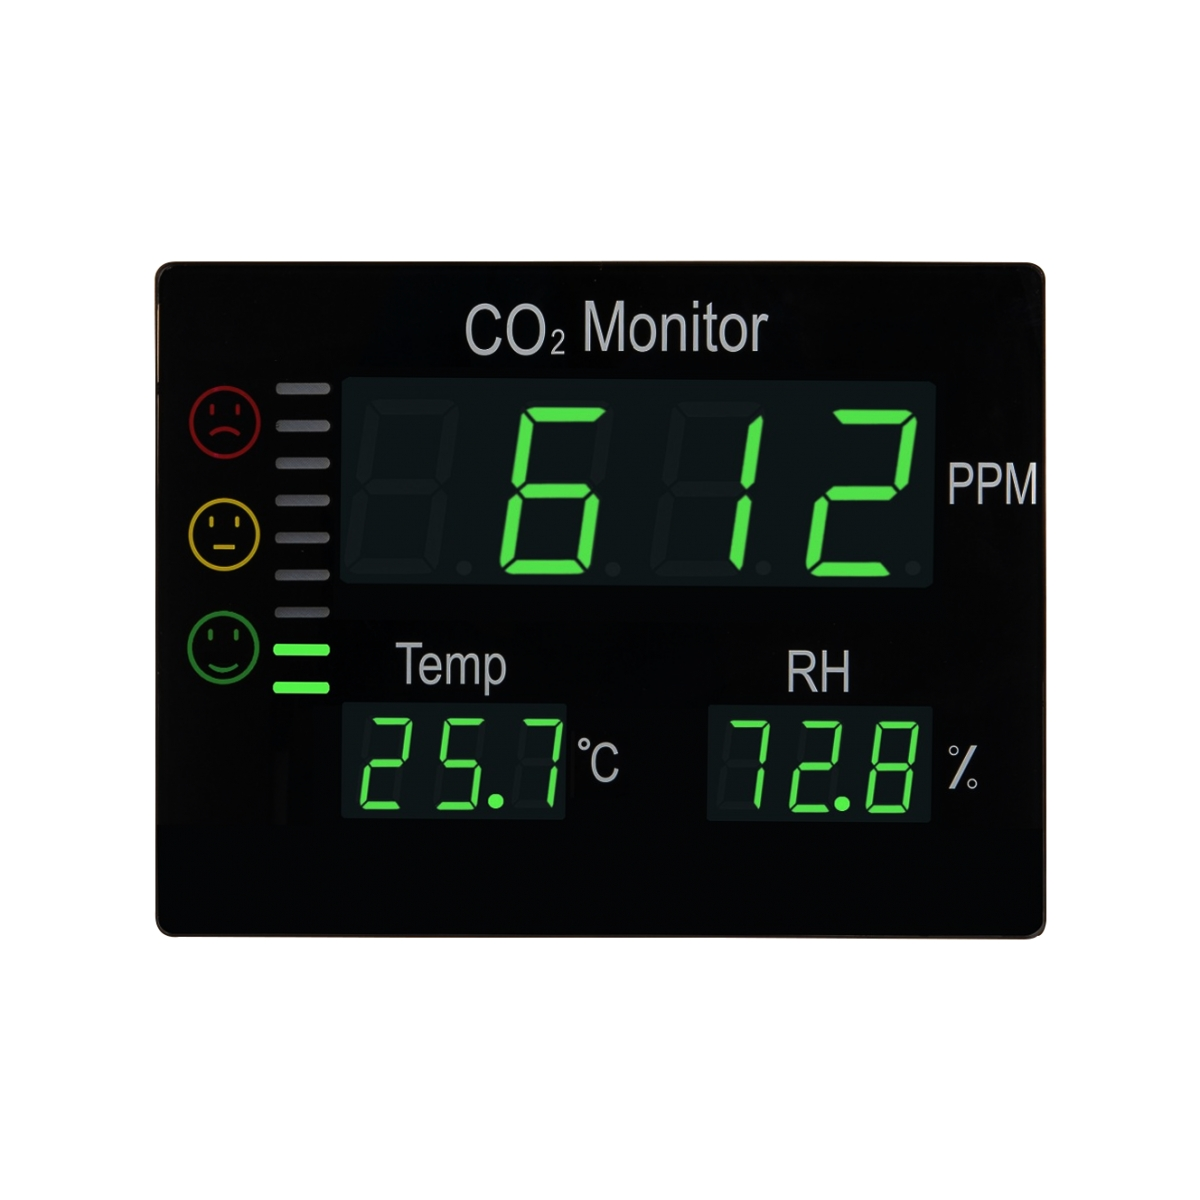 Mesure du co2 mesure de la qualit de l 39 air co2 nat osant - Appareil de mesure radioactivite ...